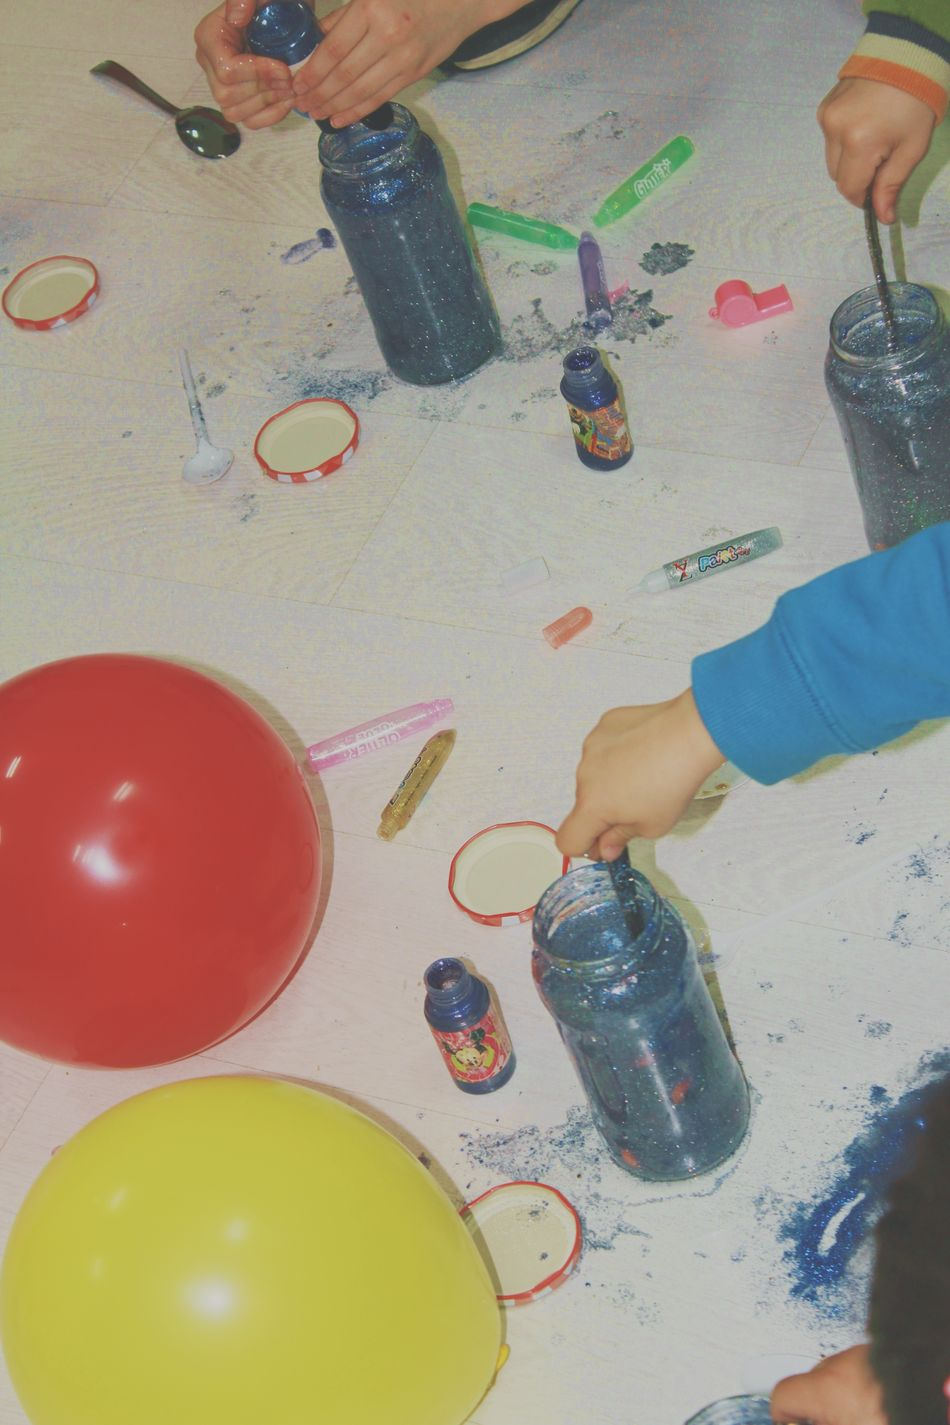 Aerosol Can Art And Craft Artist Bottle Boys Can Child Childhood Children Only Creativity Food High Angle View Art Is Everywhere Human Body Part Human Hand Indoors  Multi Colored One Person Paint Paint Can Paintbrush Palette Paper Real People Table